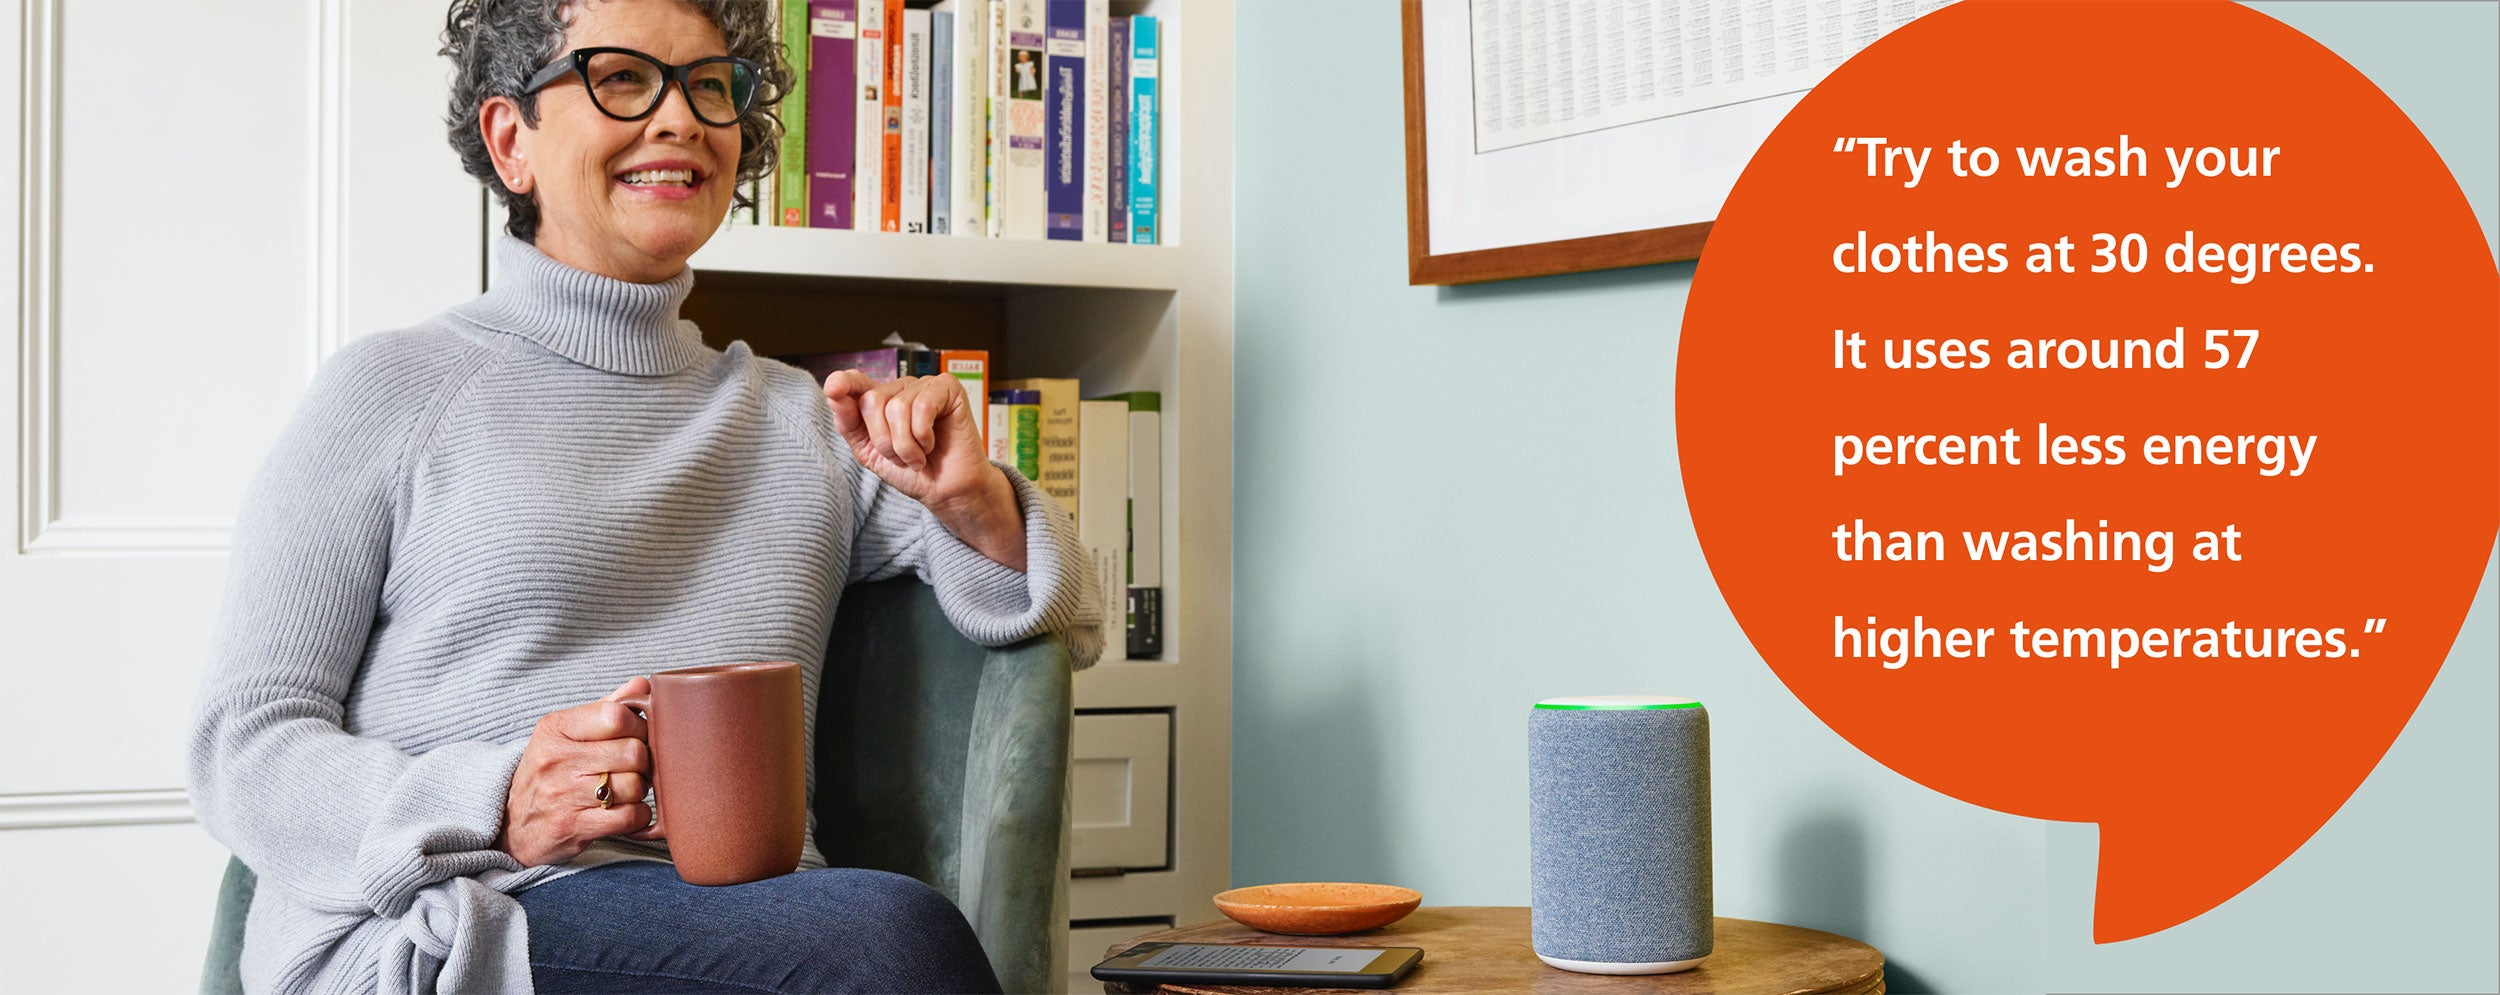 How can you save more energy at home? Just ask Alexa